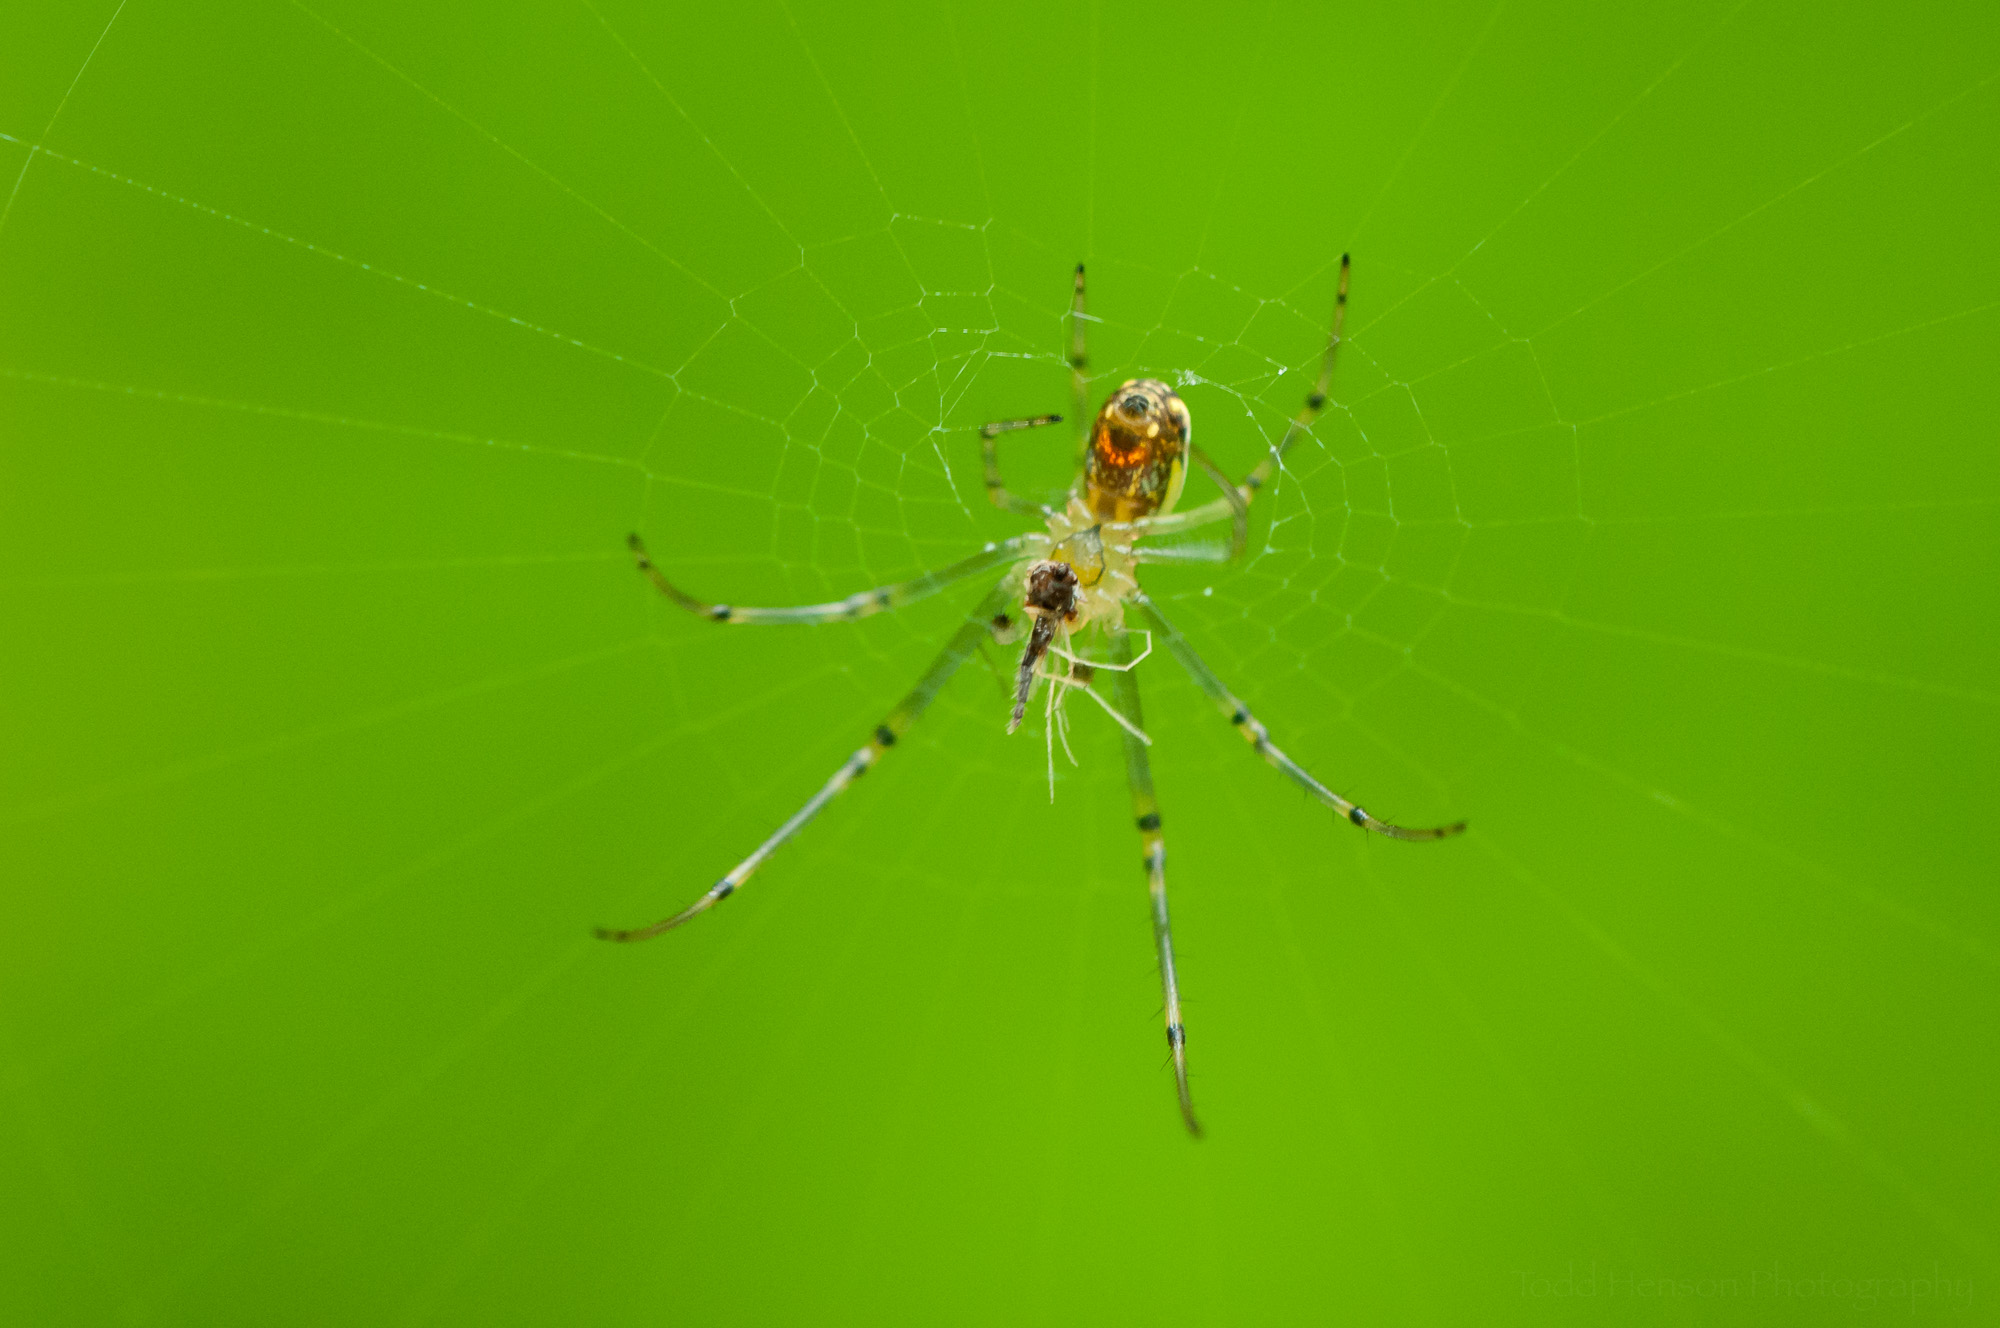 Orchard Spider with prey.